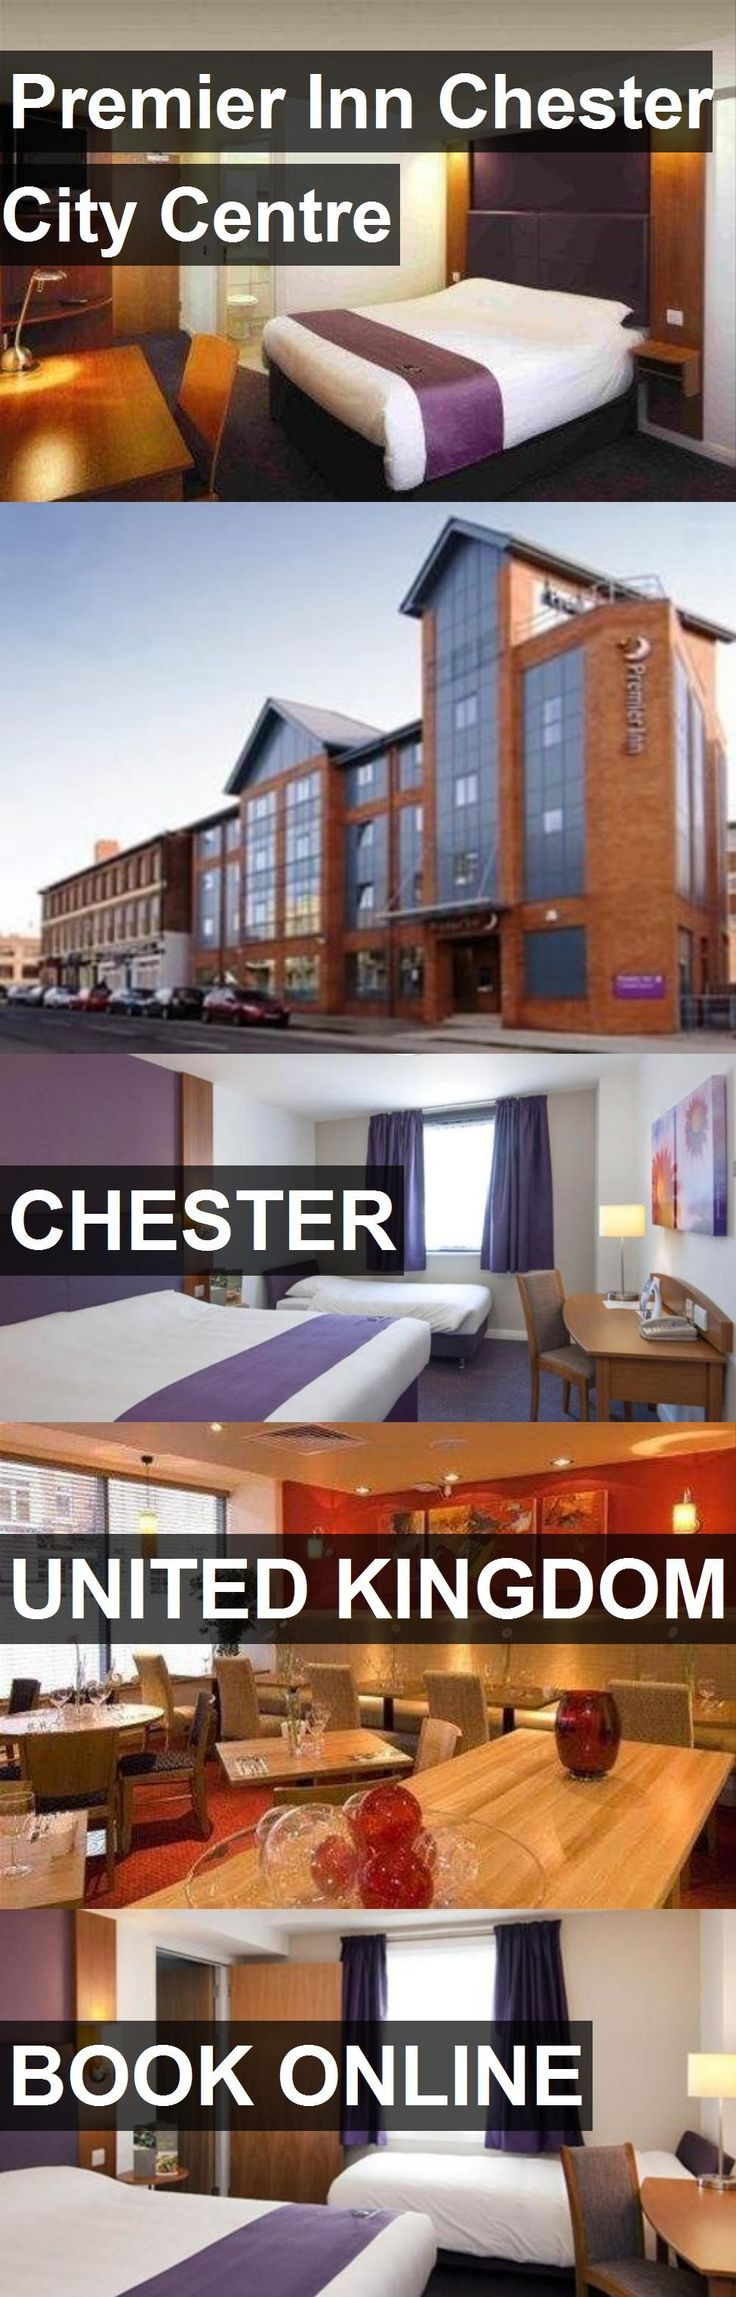 Hotel Premier Inn Chester City Centre in Chester, United Kingdom. For more information, photos, reviews and best prices please follow the link. #UnitedKingdom #Chester #PremierInnChesterCityCentre #hotel #travel #vacation